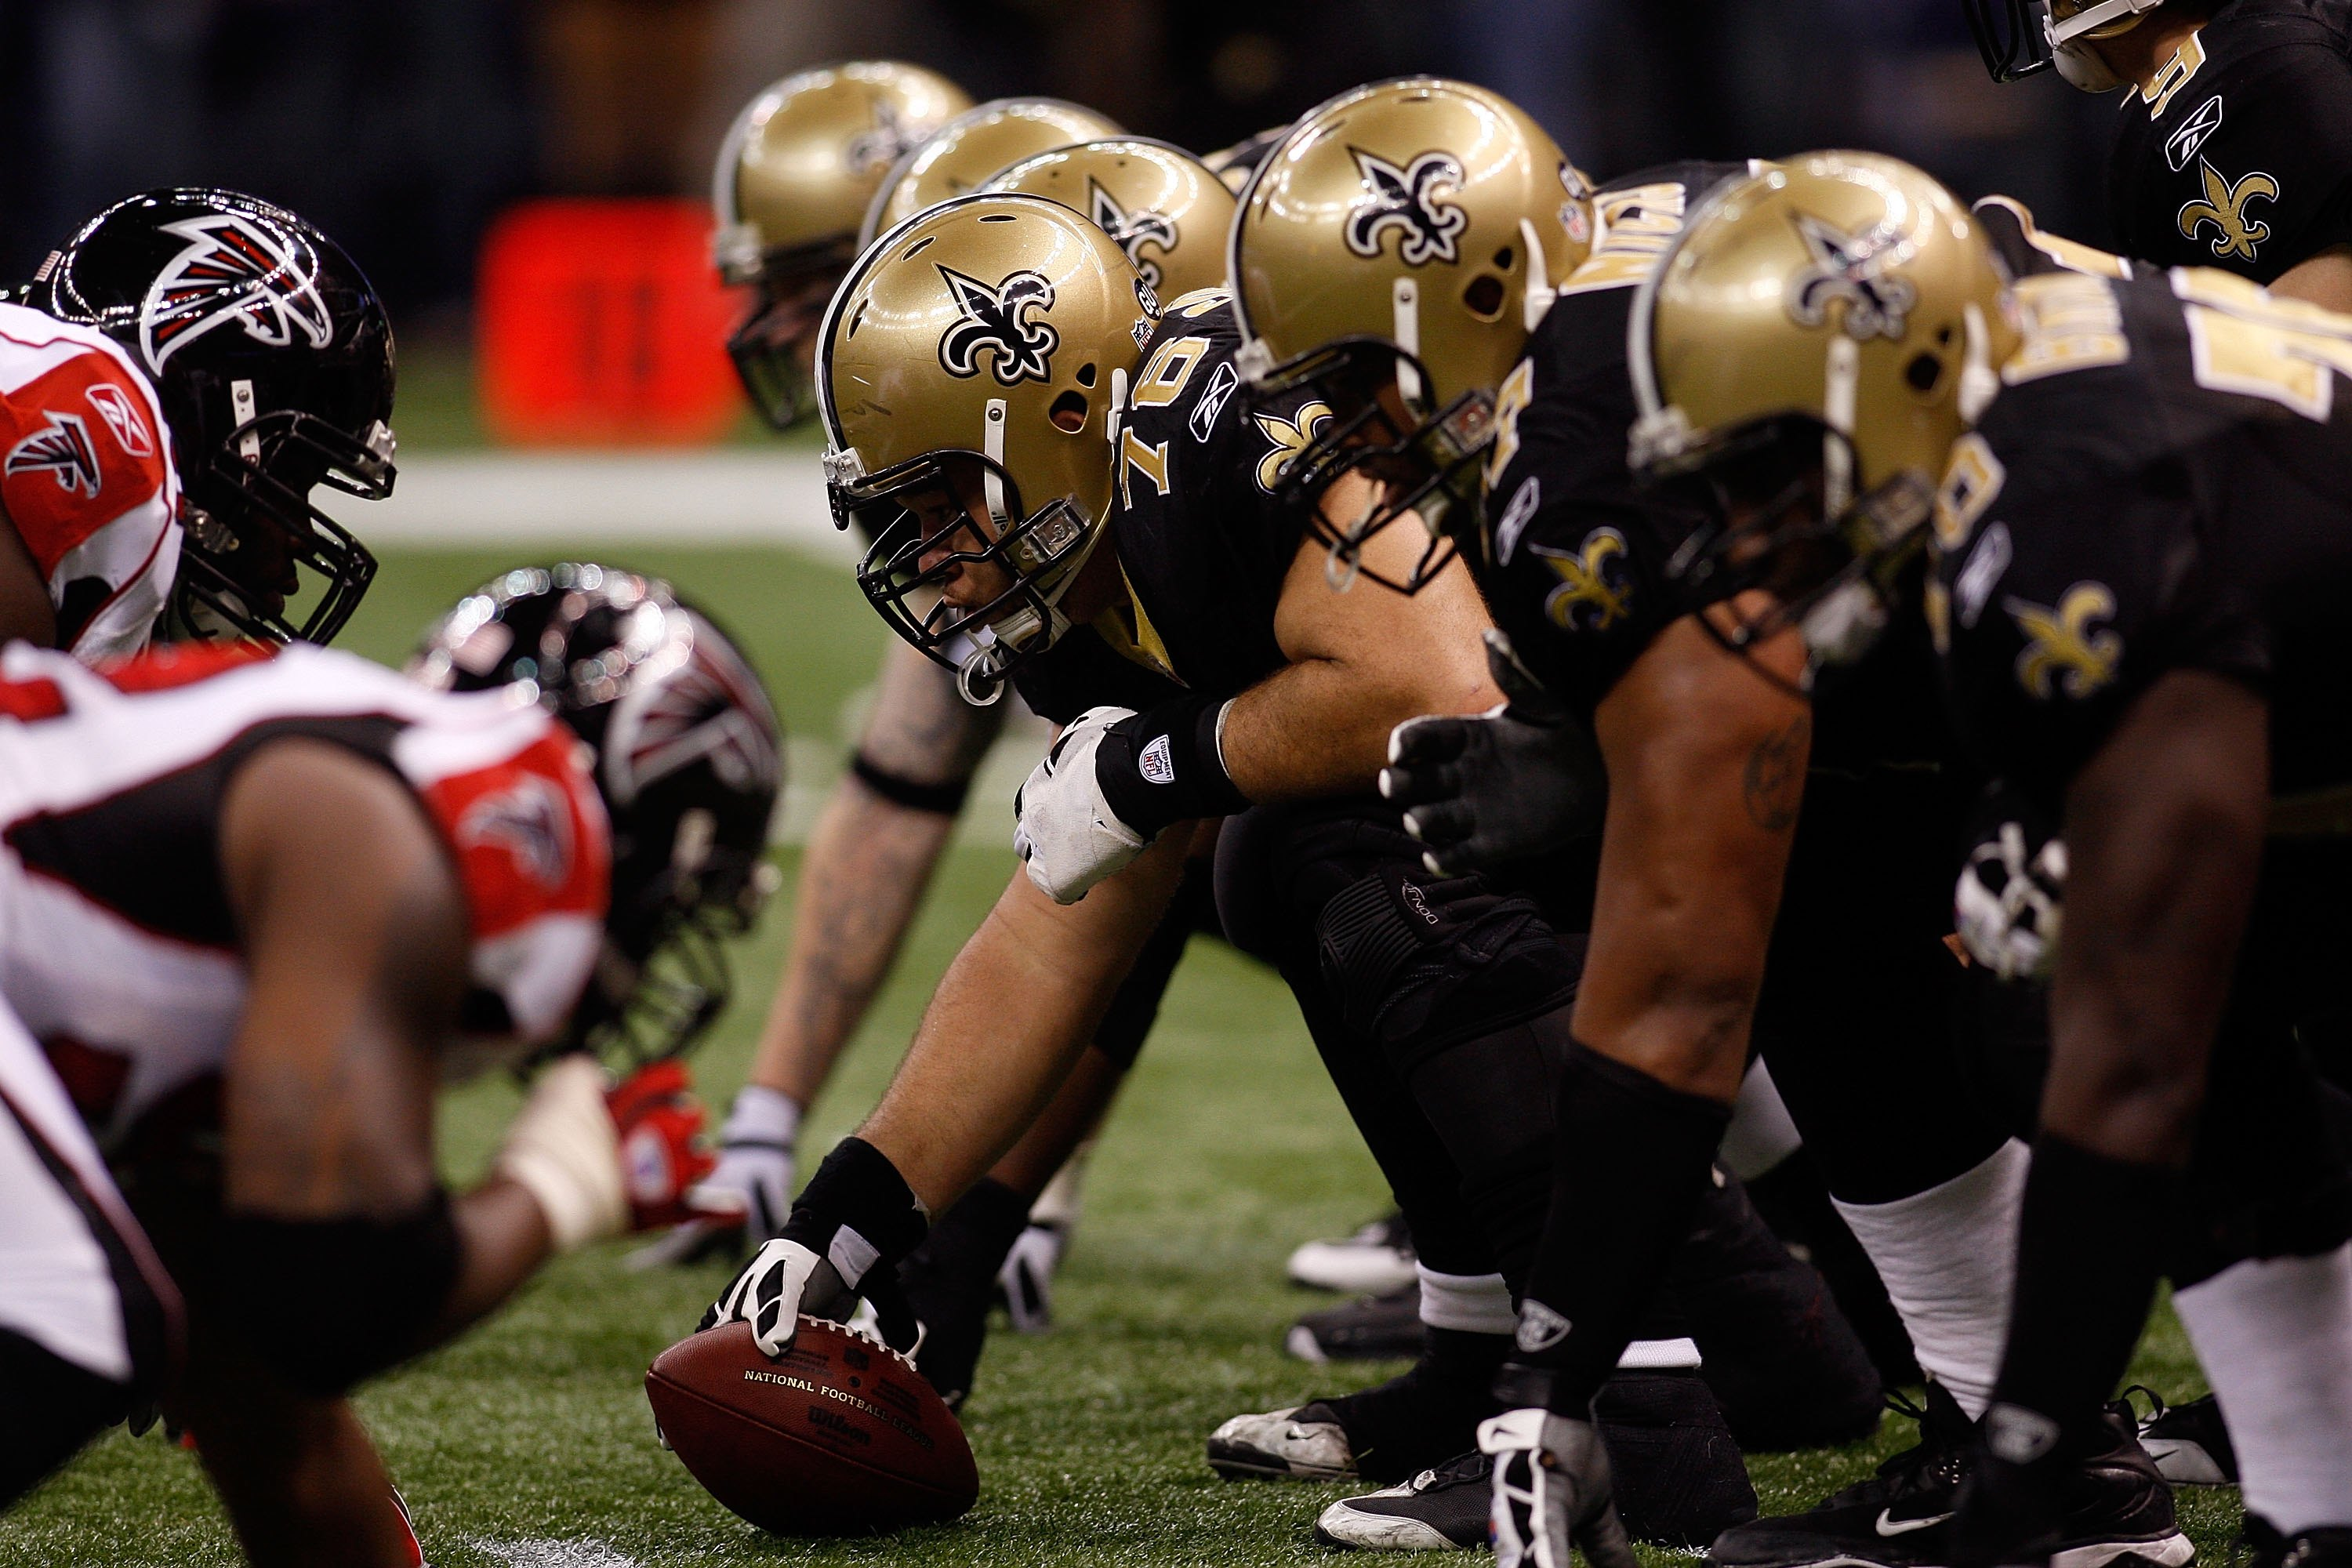 NEW ORLEANS - DECEMBER 07:  Jonathan Goodwin #76 of the New Orleans Saints readies to snap the ball against the Atlanta Falcons on December 7, 2008 at the Superdome in New Orleans, Louisiana.  (Photo by Chris Graythen/Getty Images)